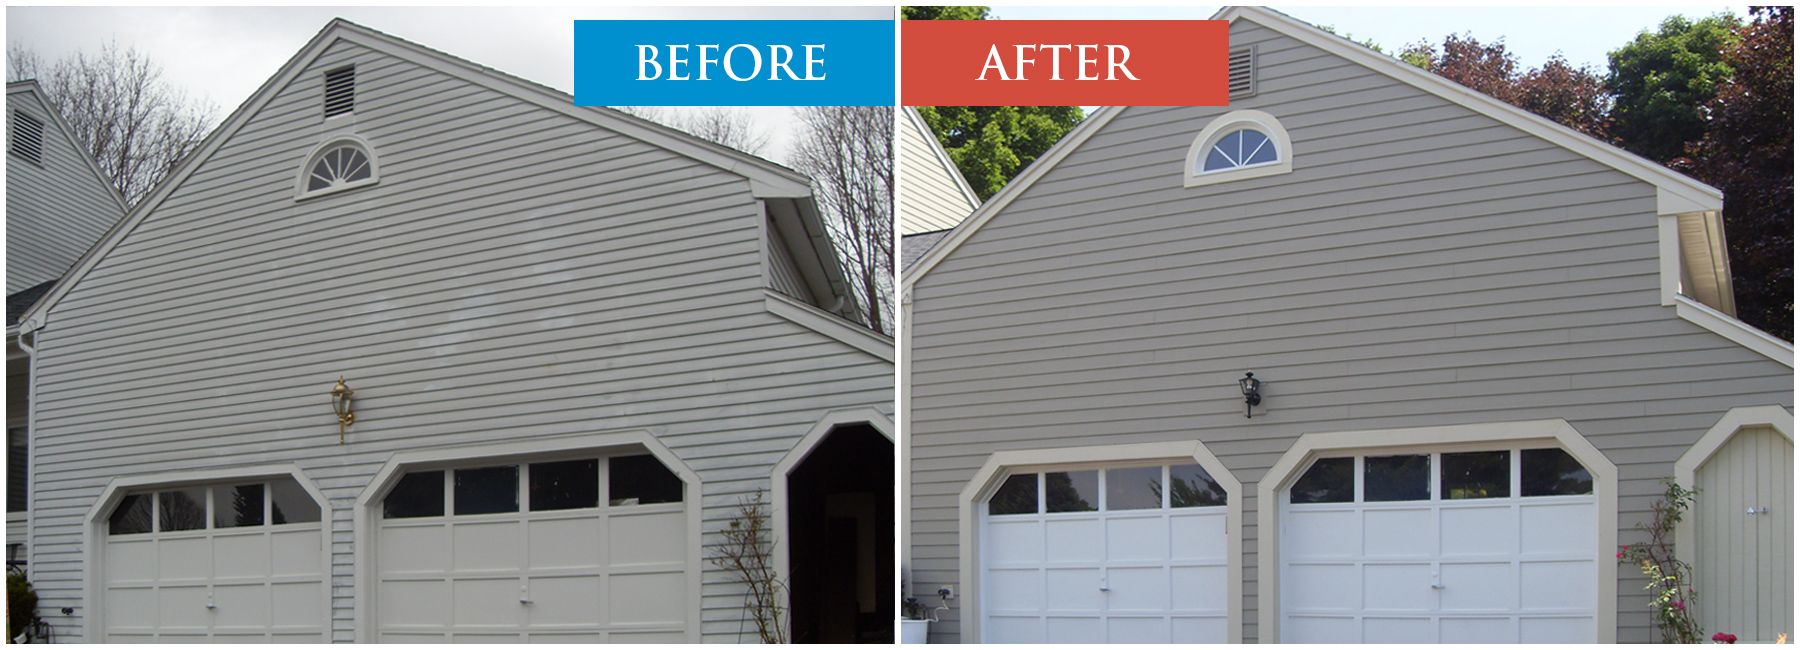 Fiber Cement Siding Before and After Image Comparison. Boston MA